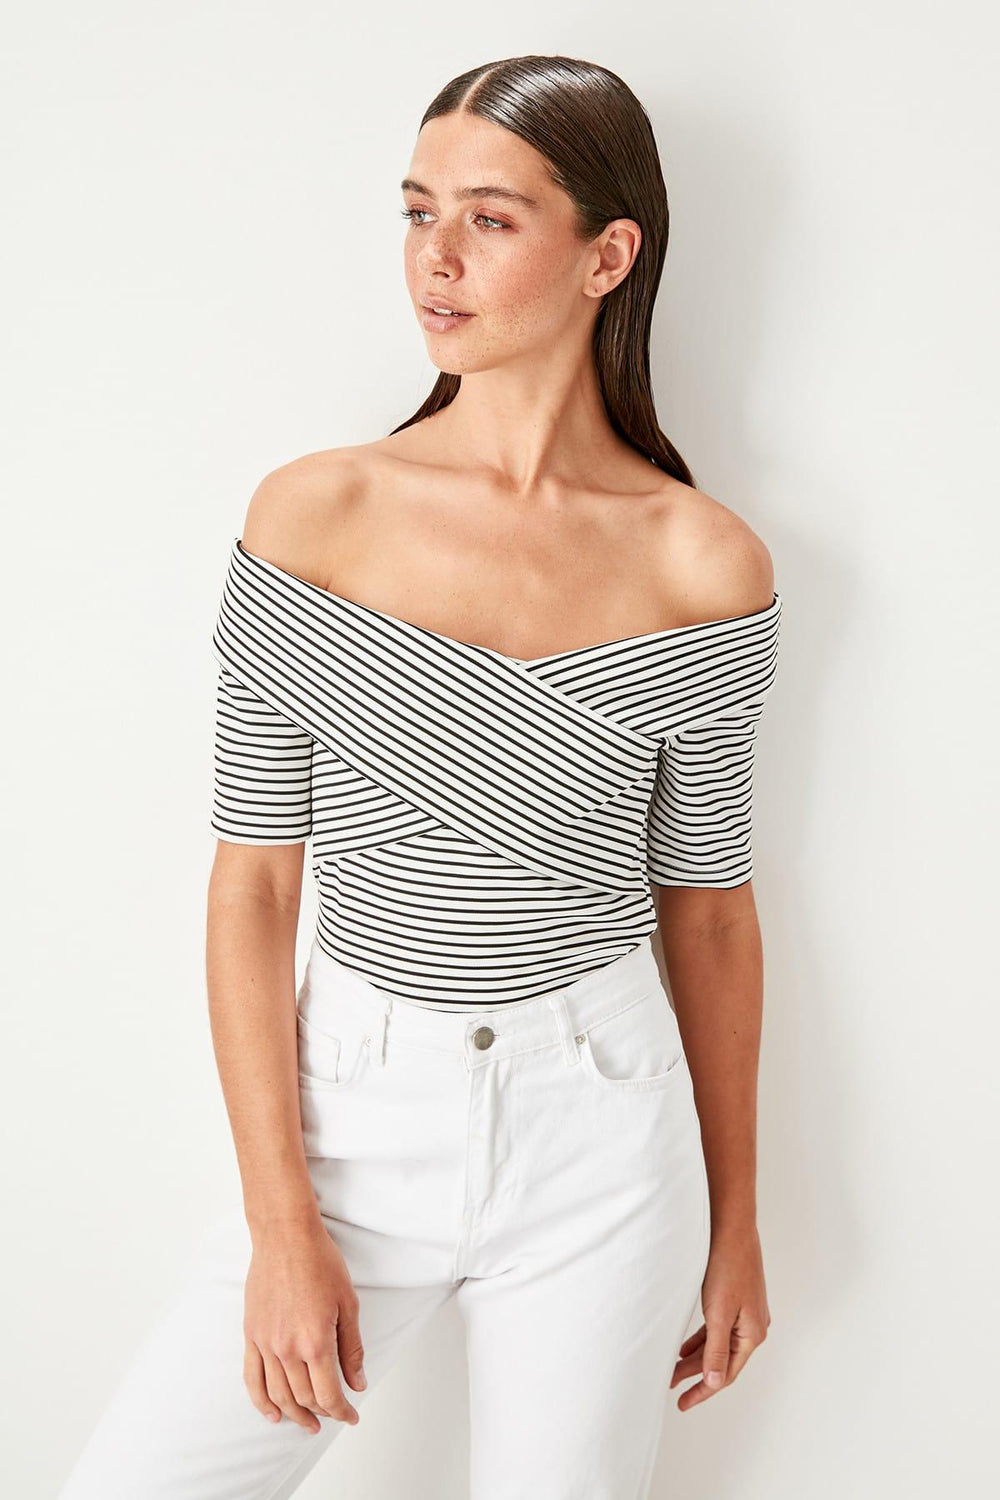 Miss Zut Miss Zut White Striped Knitted Blouse Miss Zut &CO